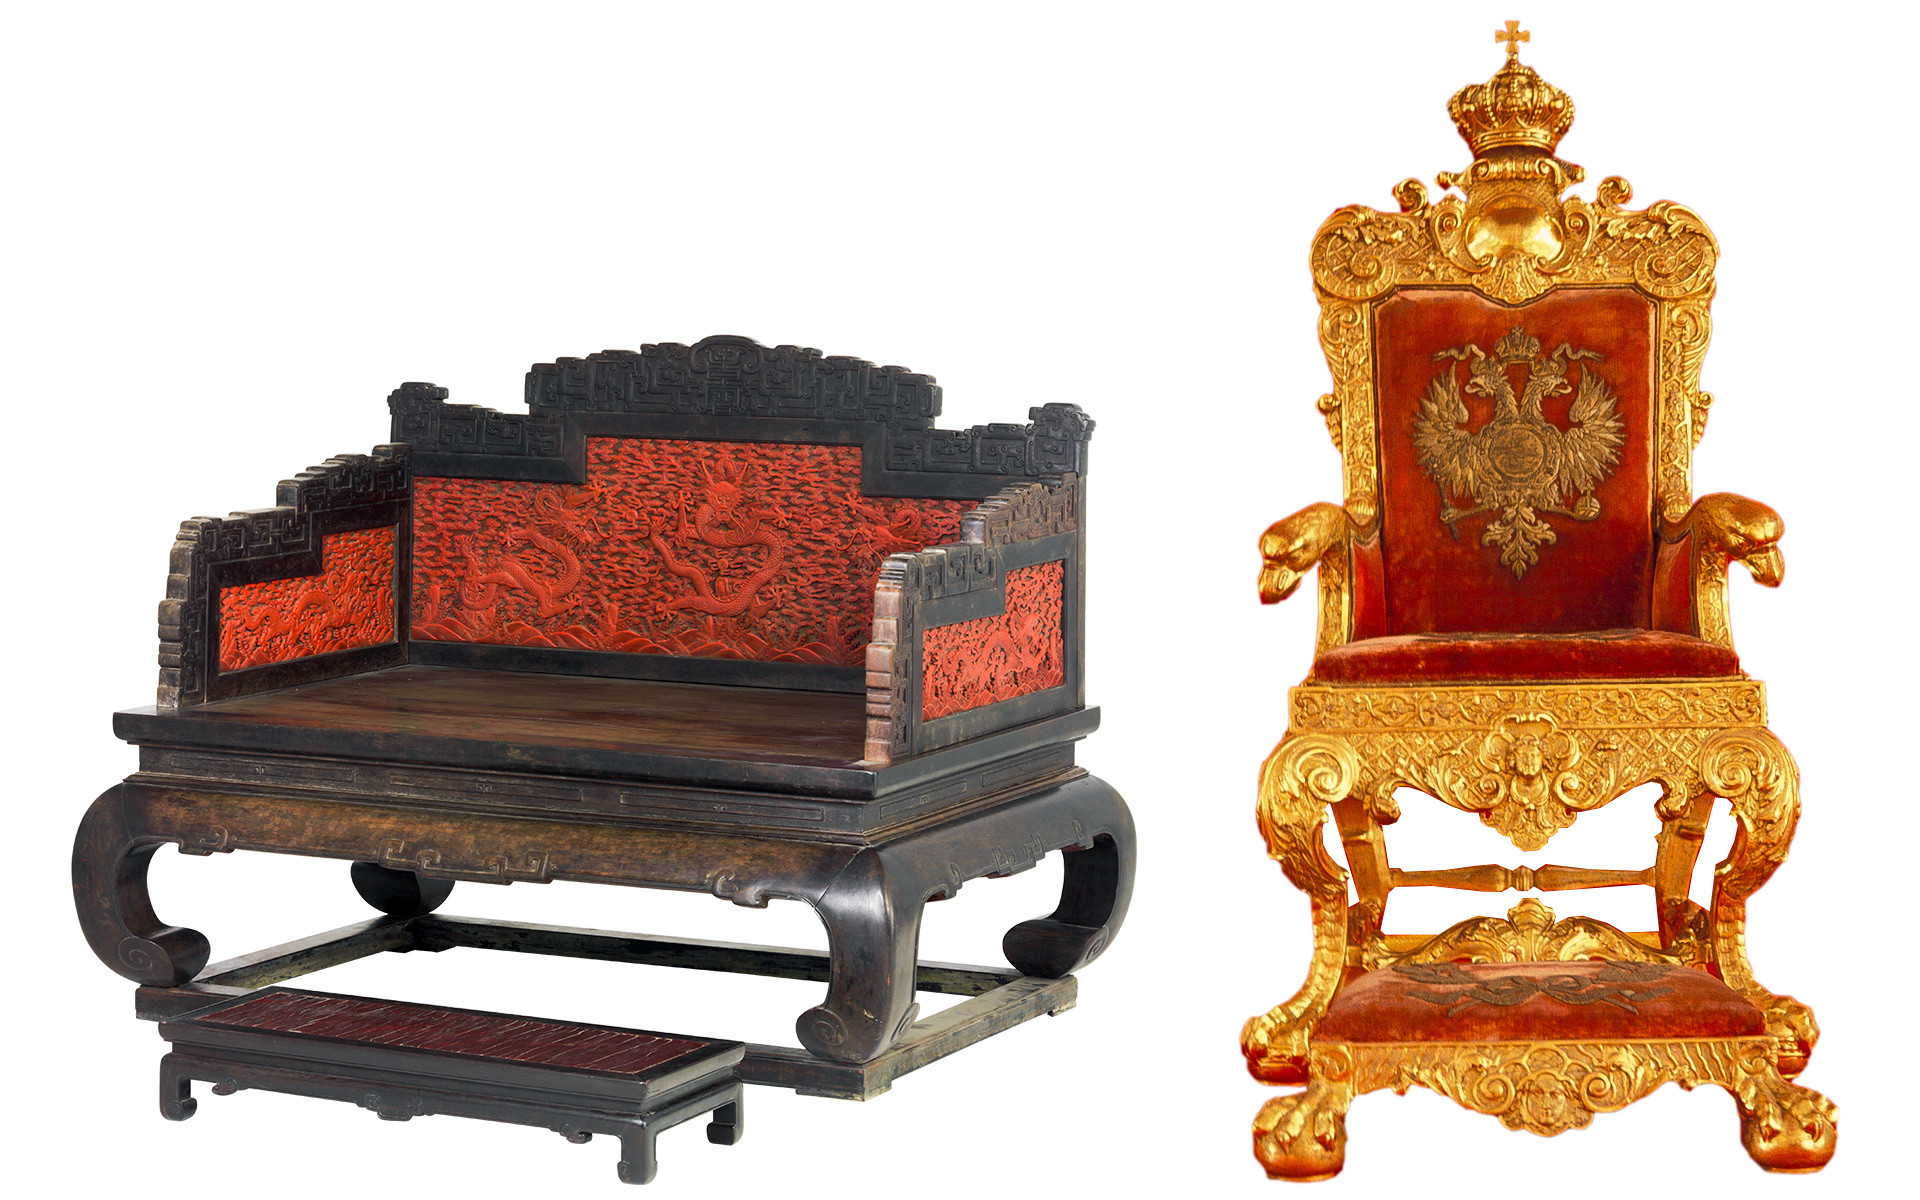 Left: Emperor's throne from the Quing era (1644-1912). Right: The throne of Paul I of Russia.